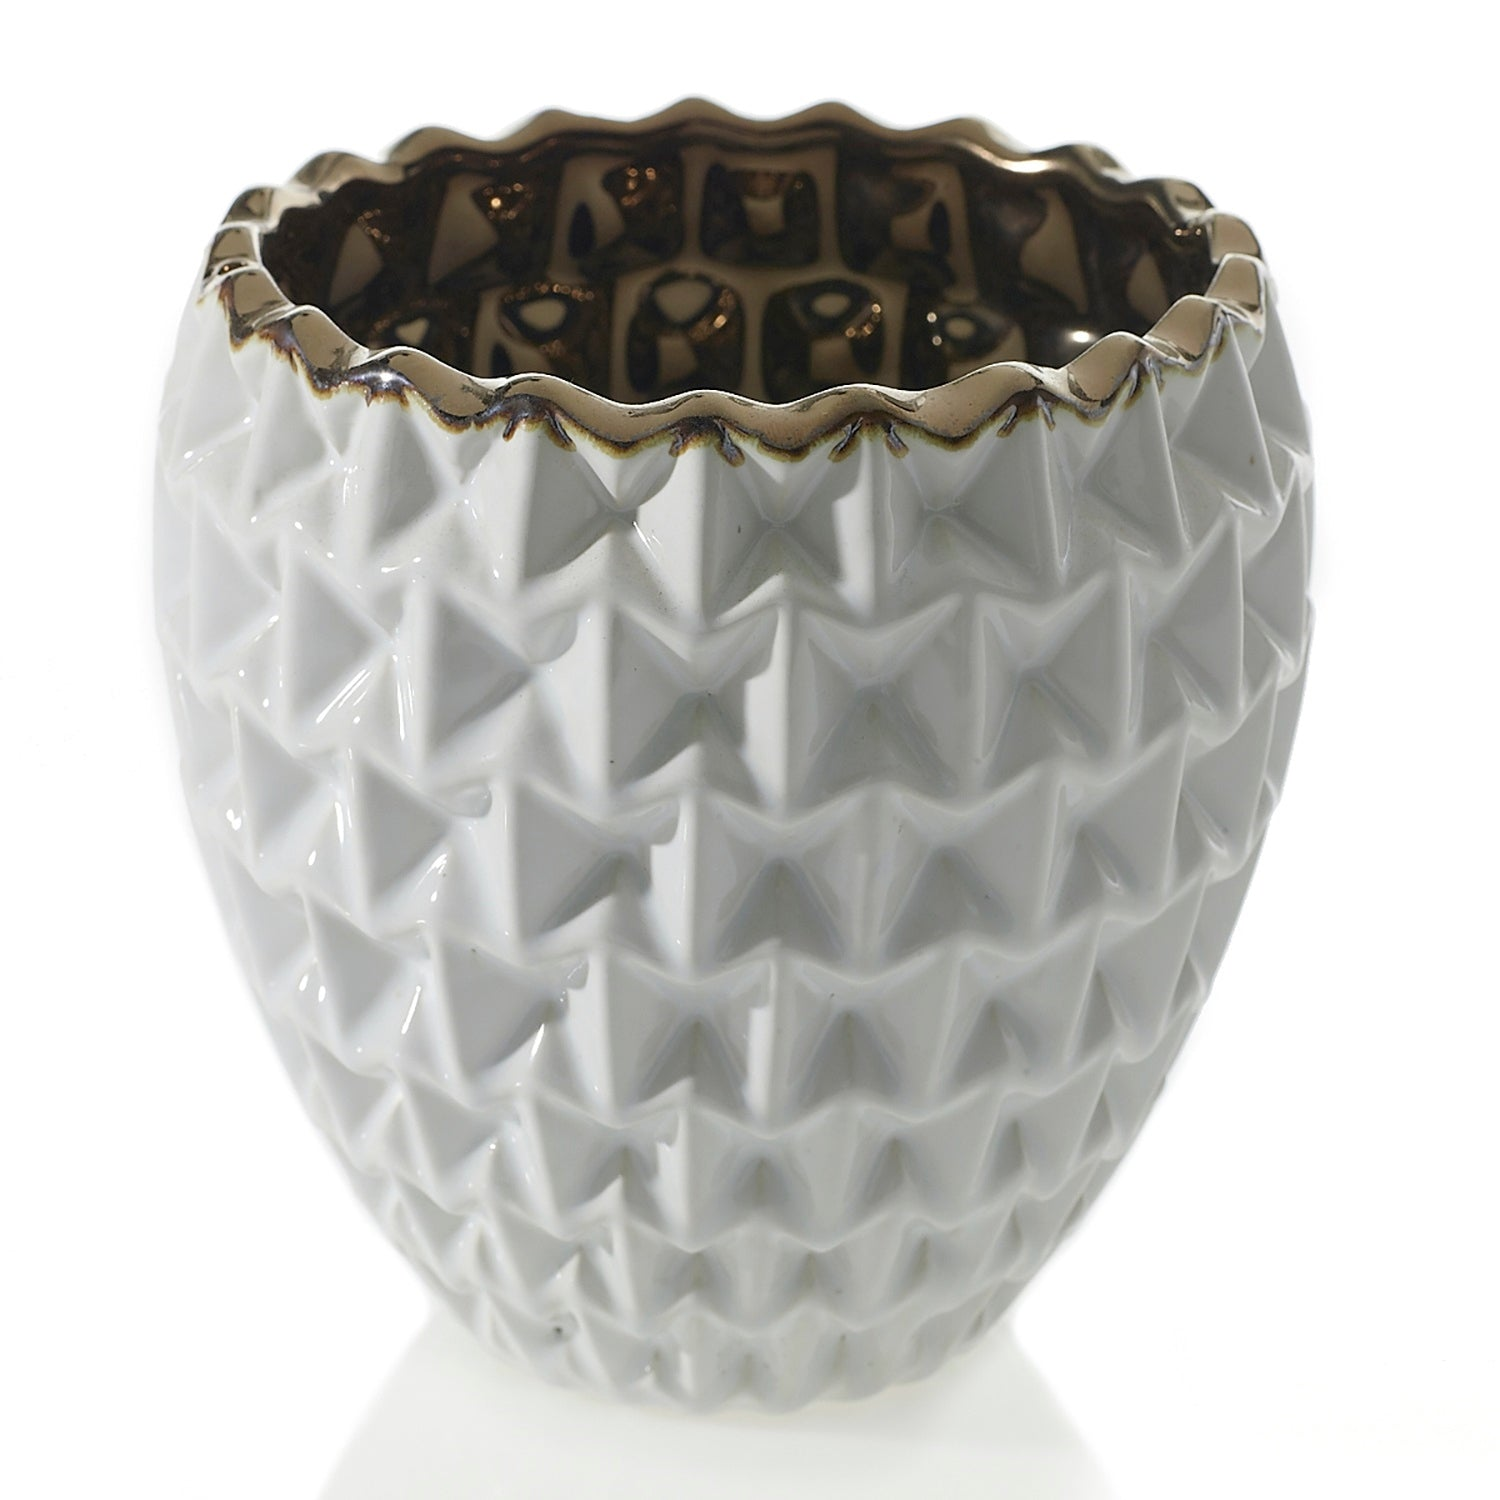 "MELROSE POT 6.5""x 7.25"" White"